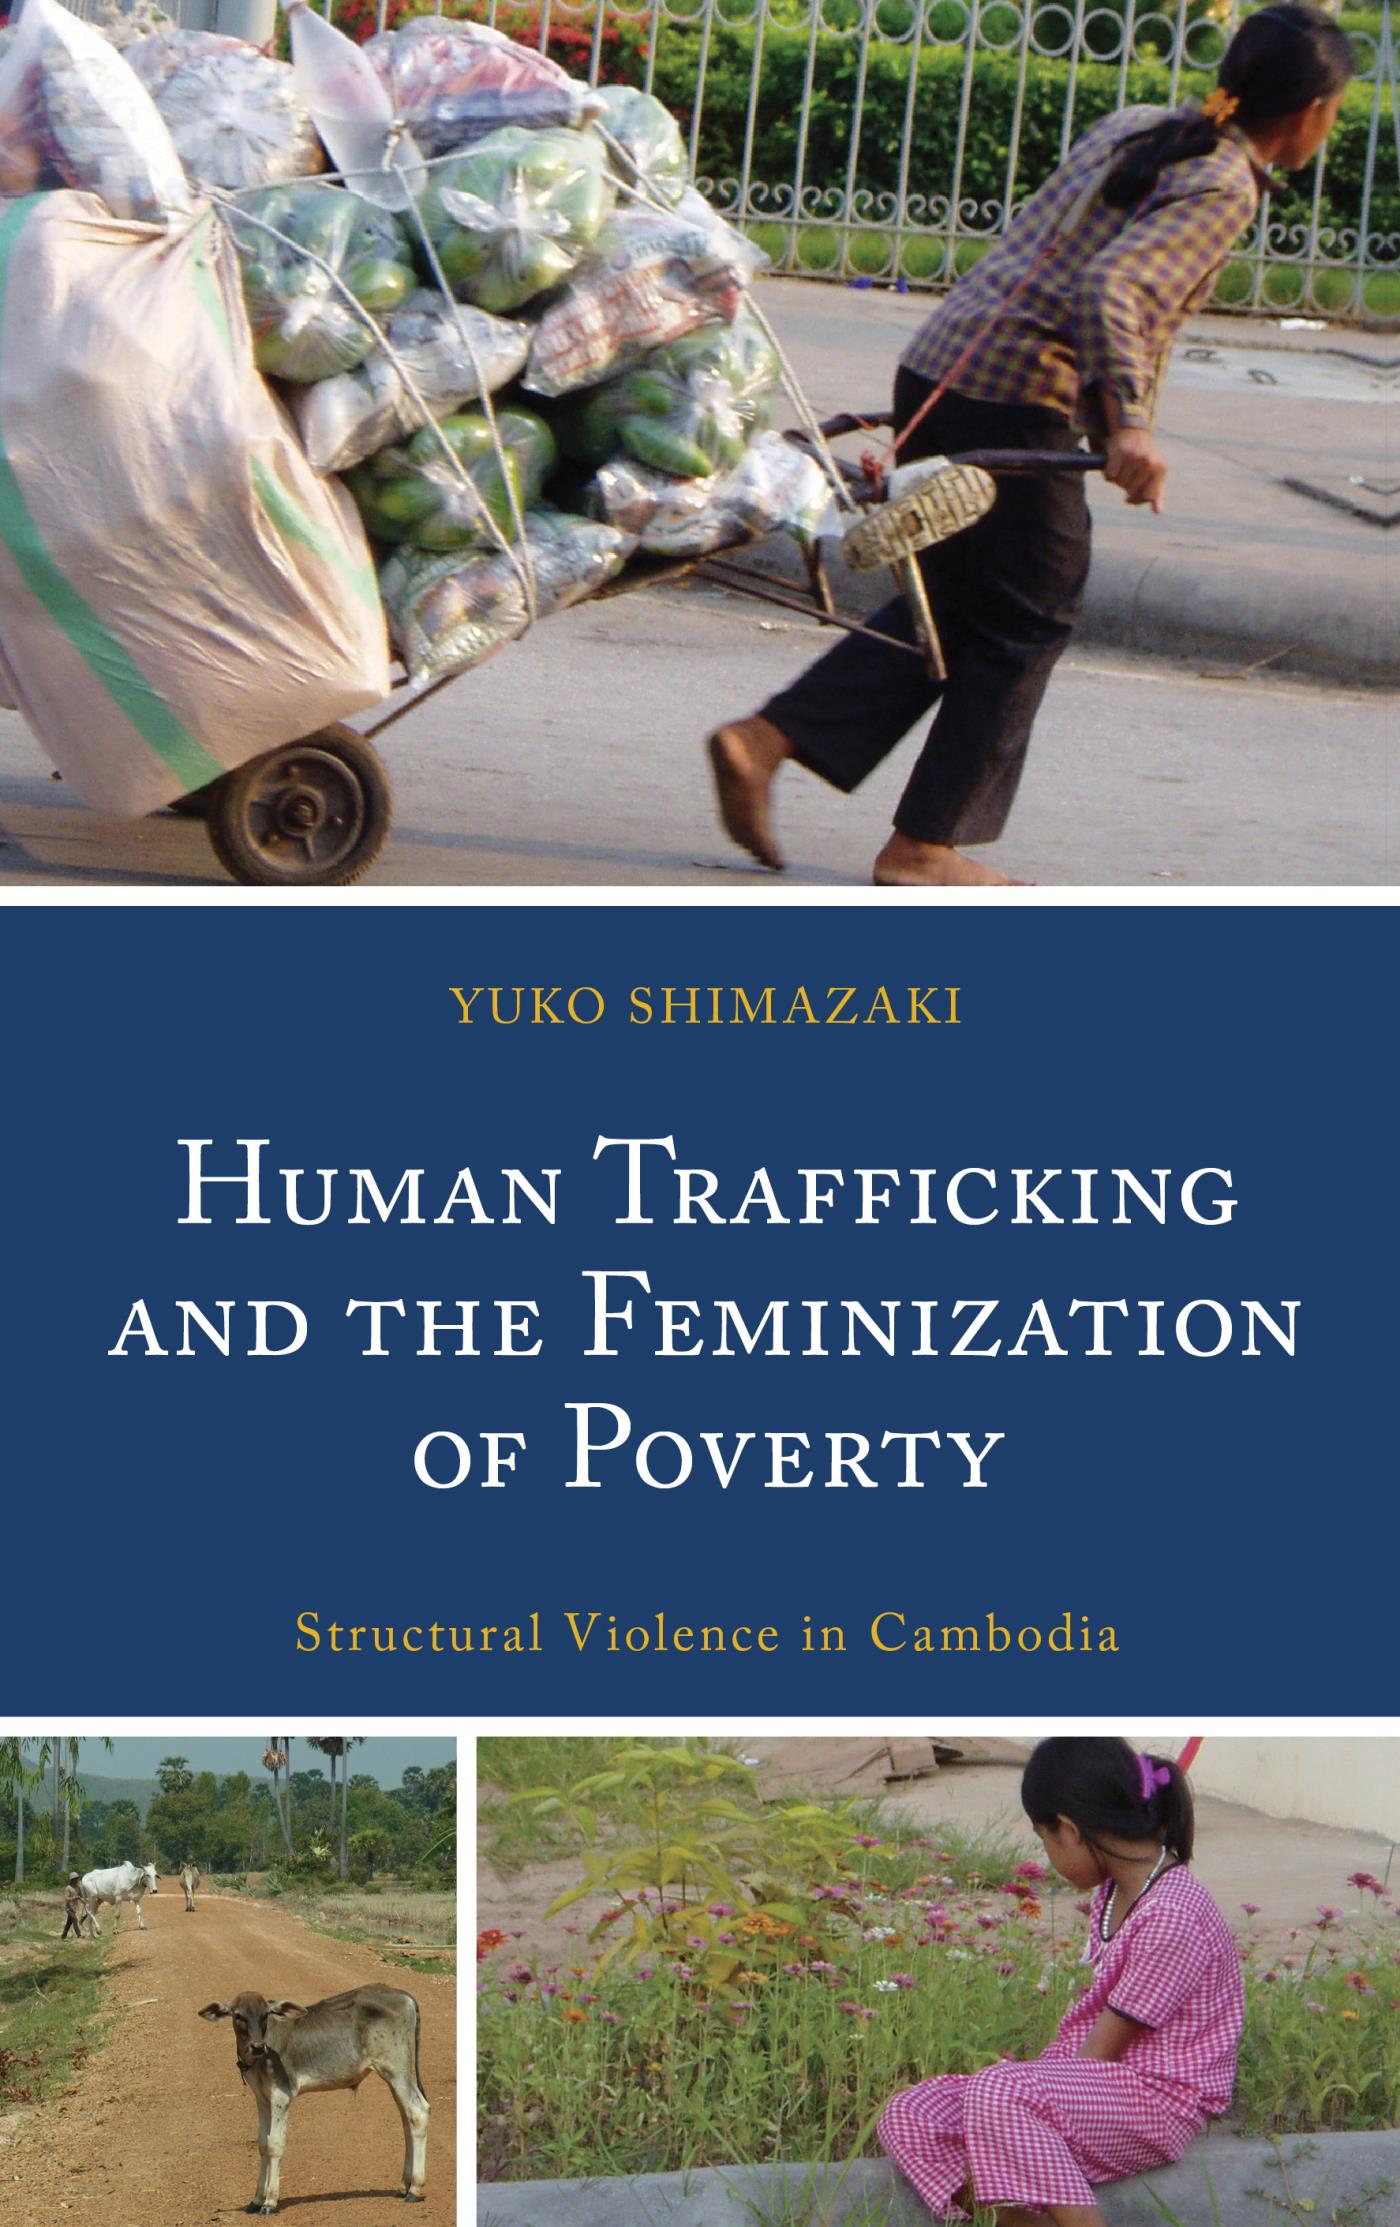 Human Trafficking and the Feminization of Poverty